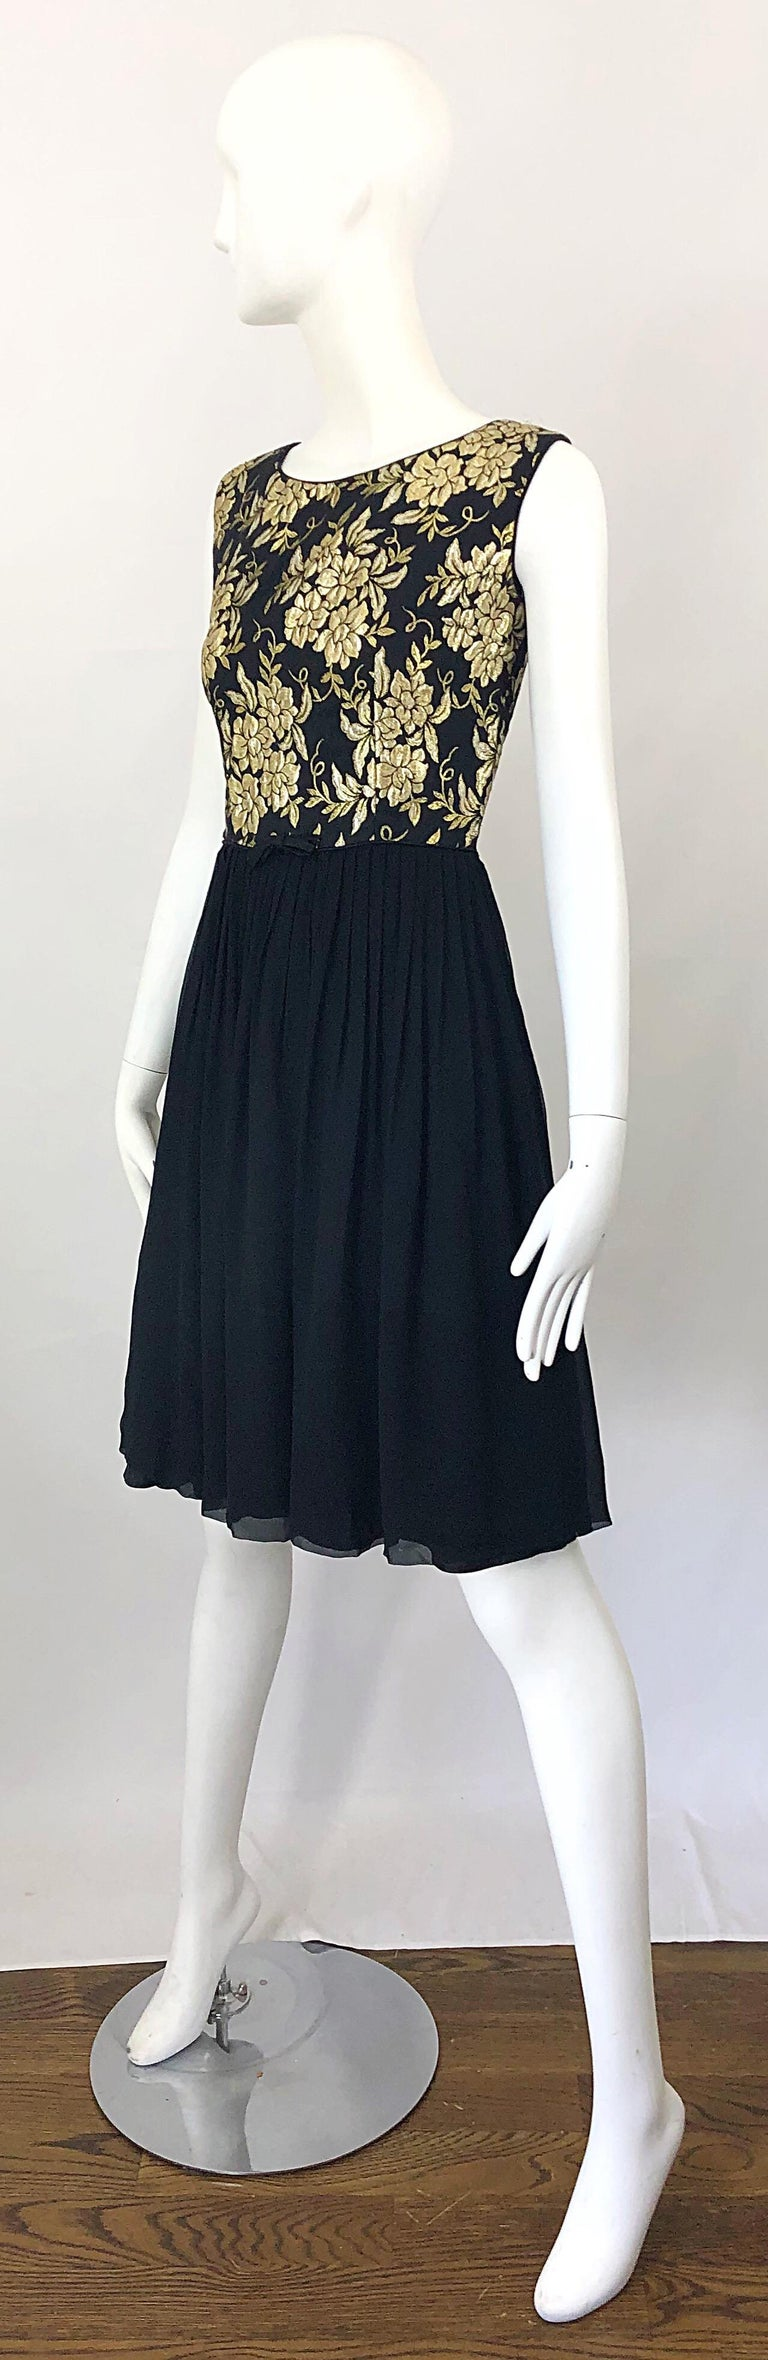 1950s Demi Couture Gold + Black Silk Brocade and Chiffon Vintage 50s Dress For Sale 1